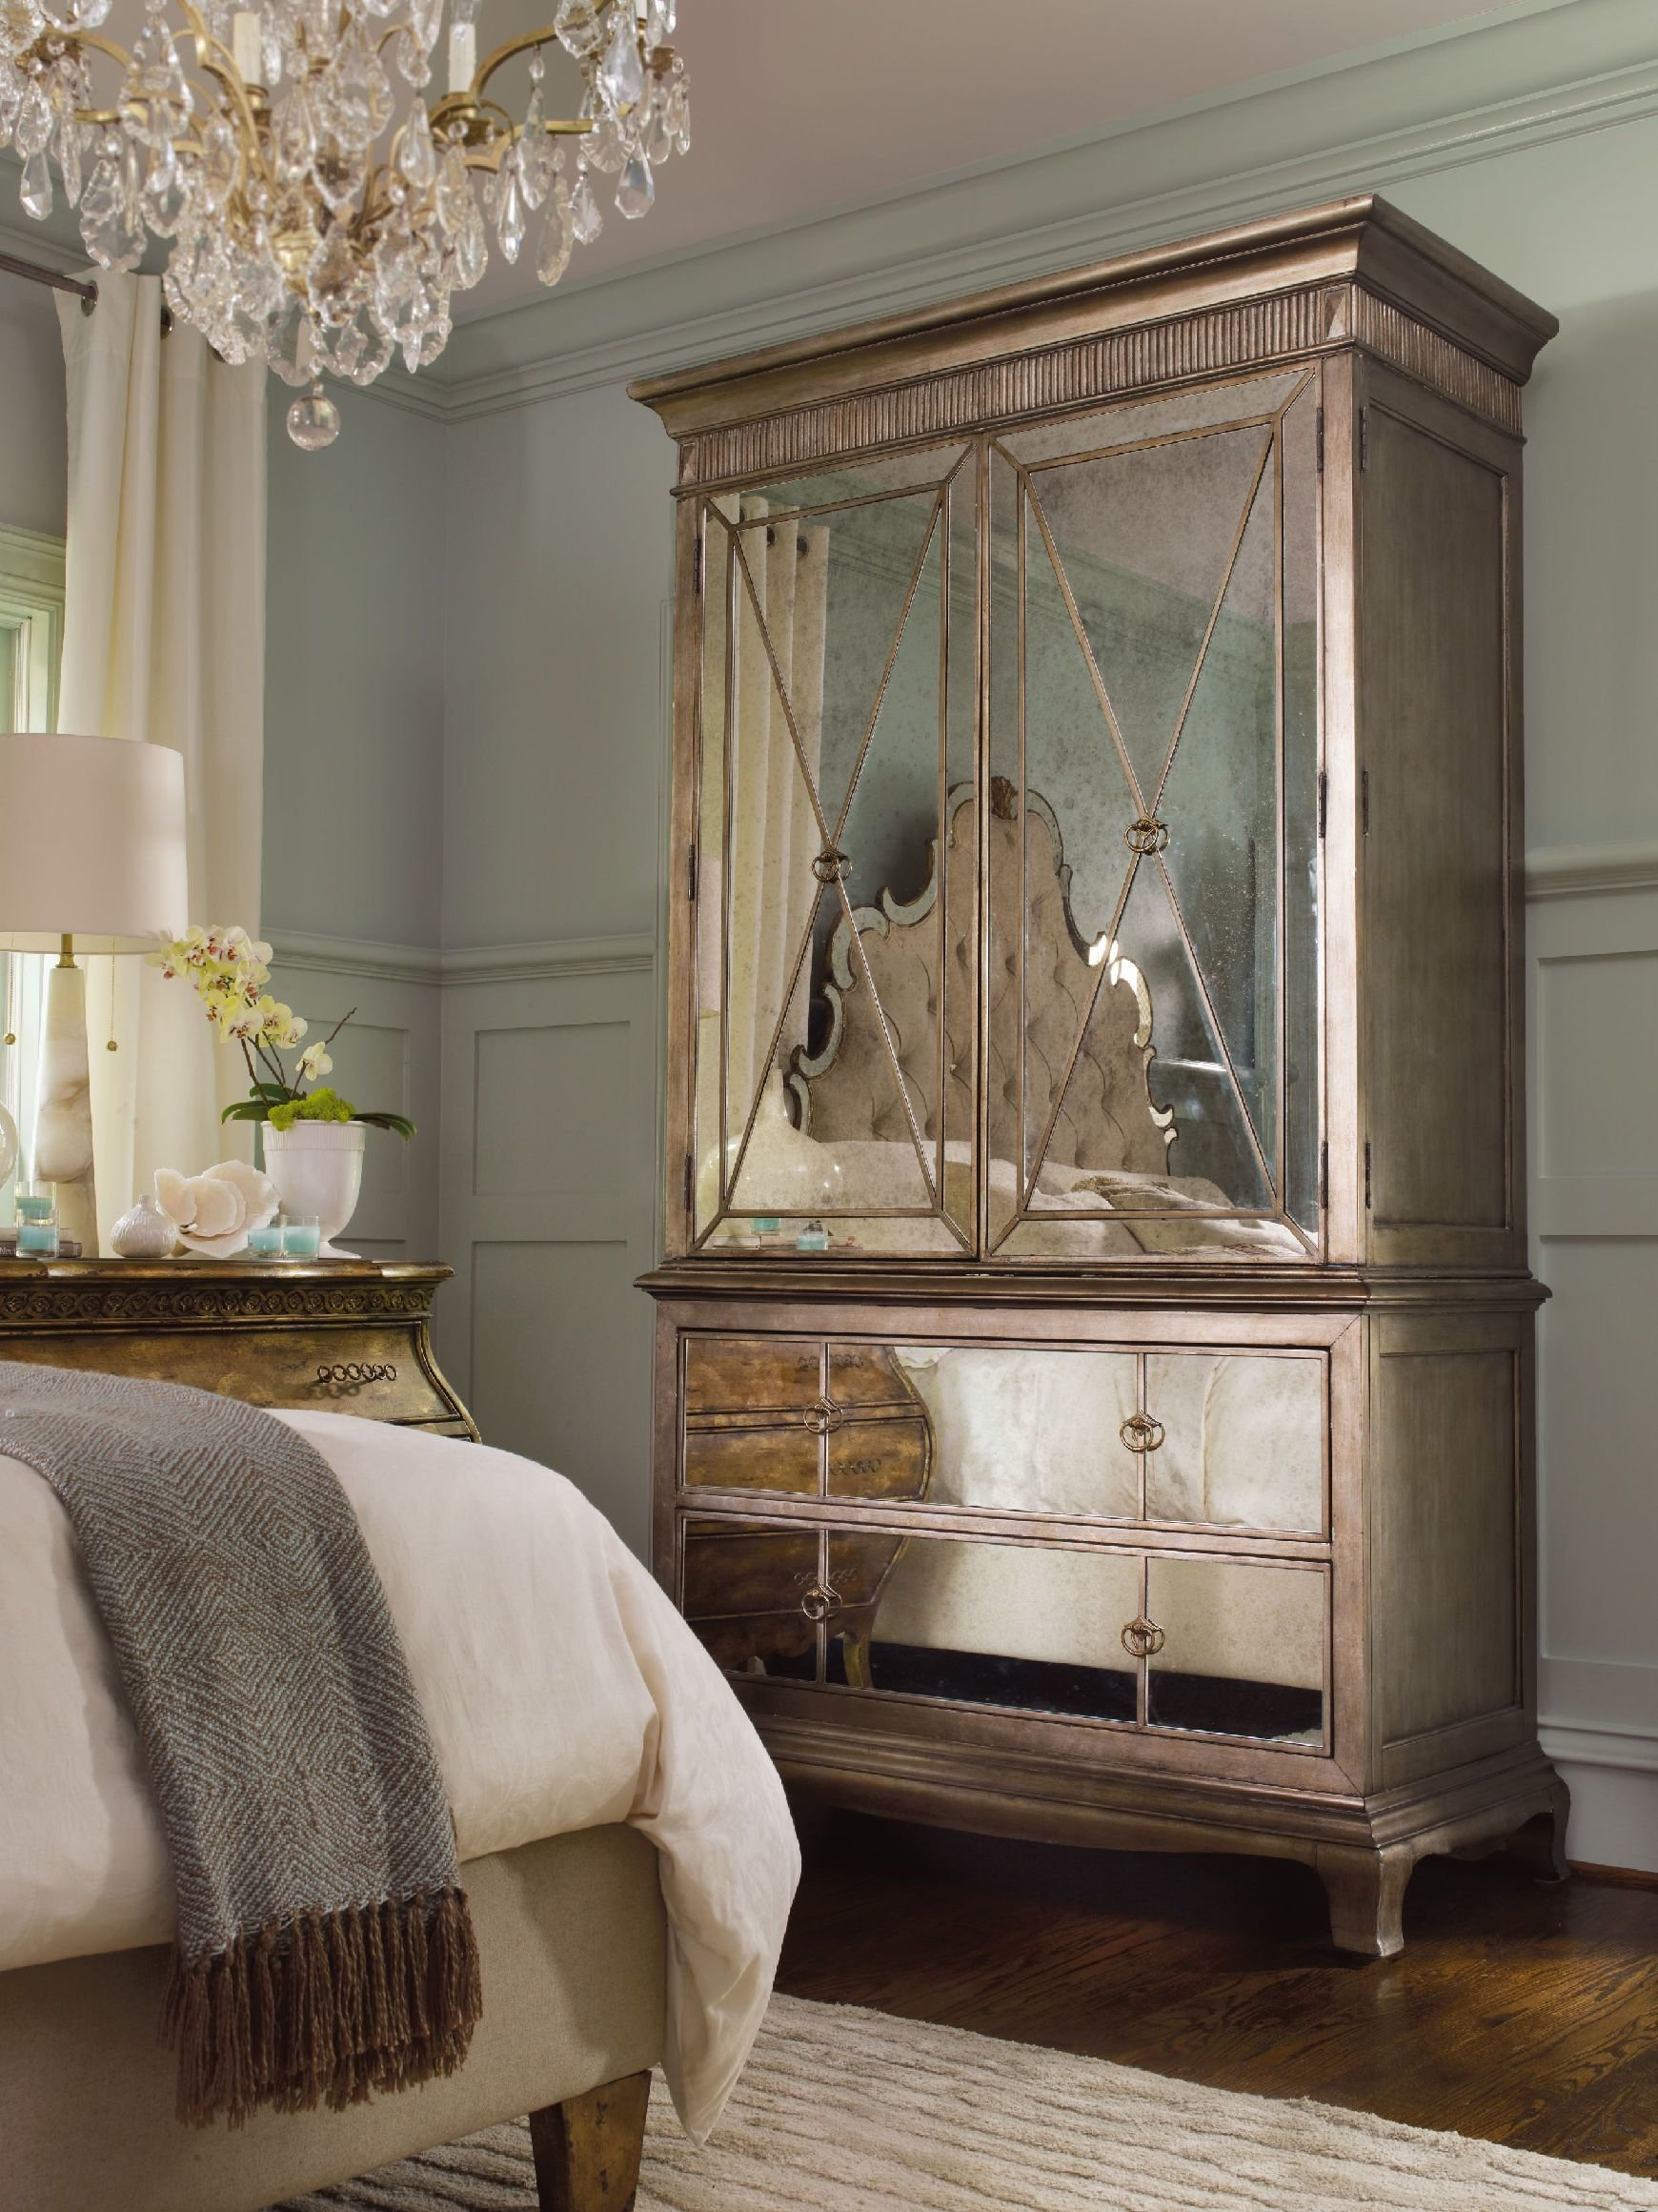 Best H**K*R Furniture Bedroom Sanctuary Armoire Visage 3016 90013 With Pictures